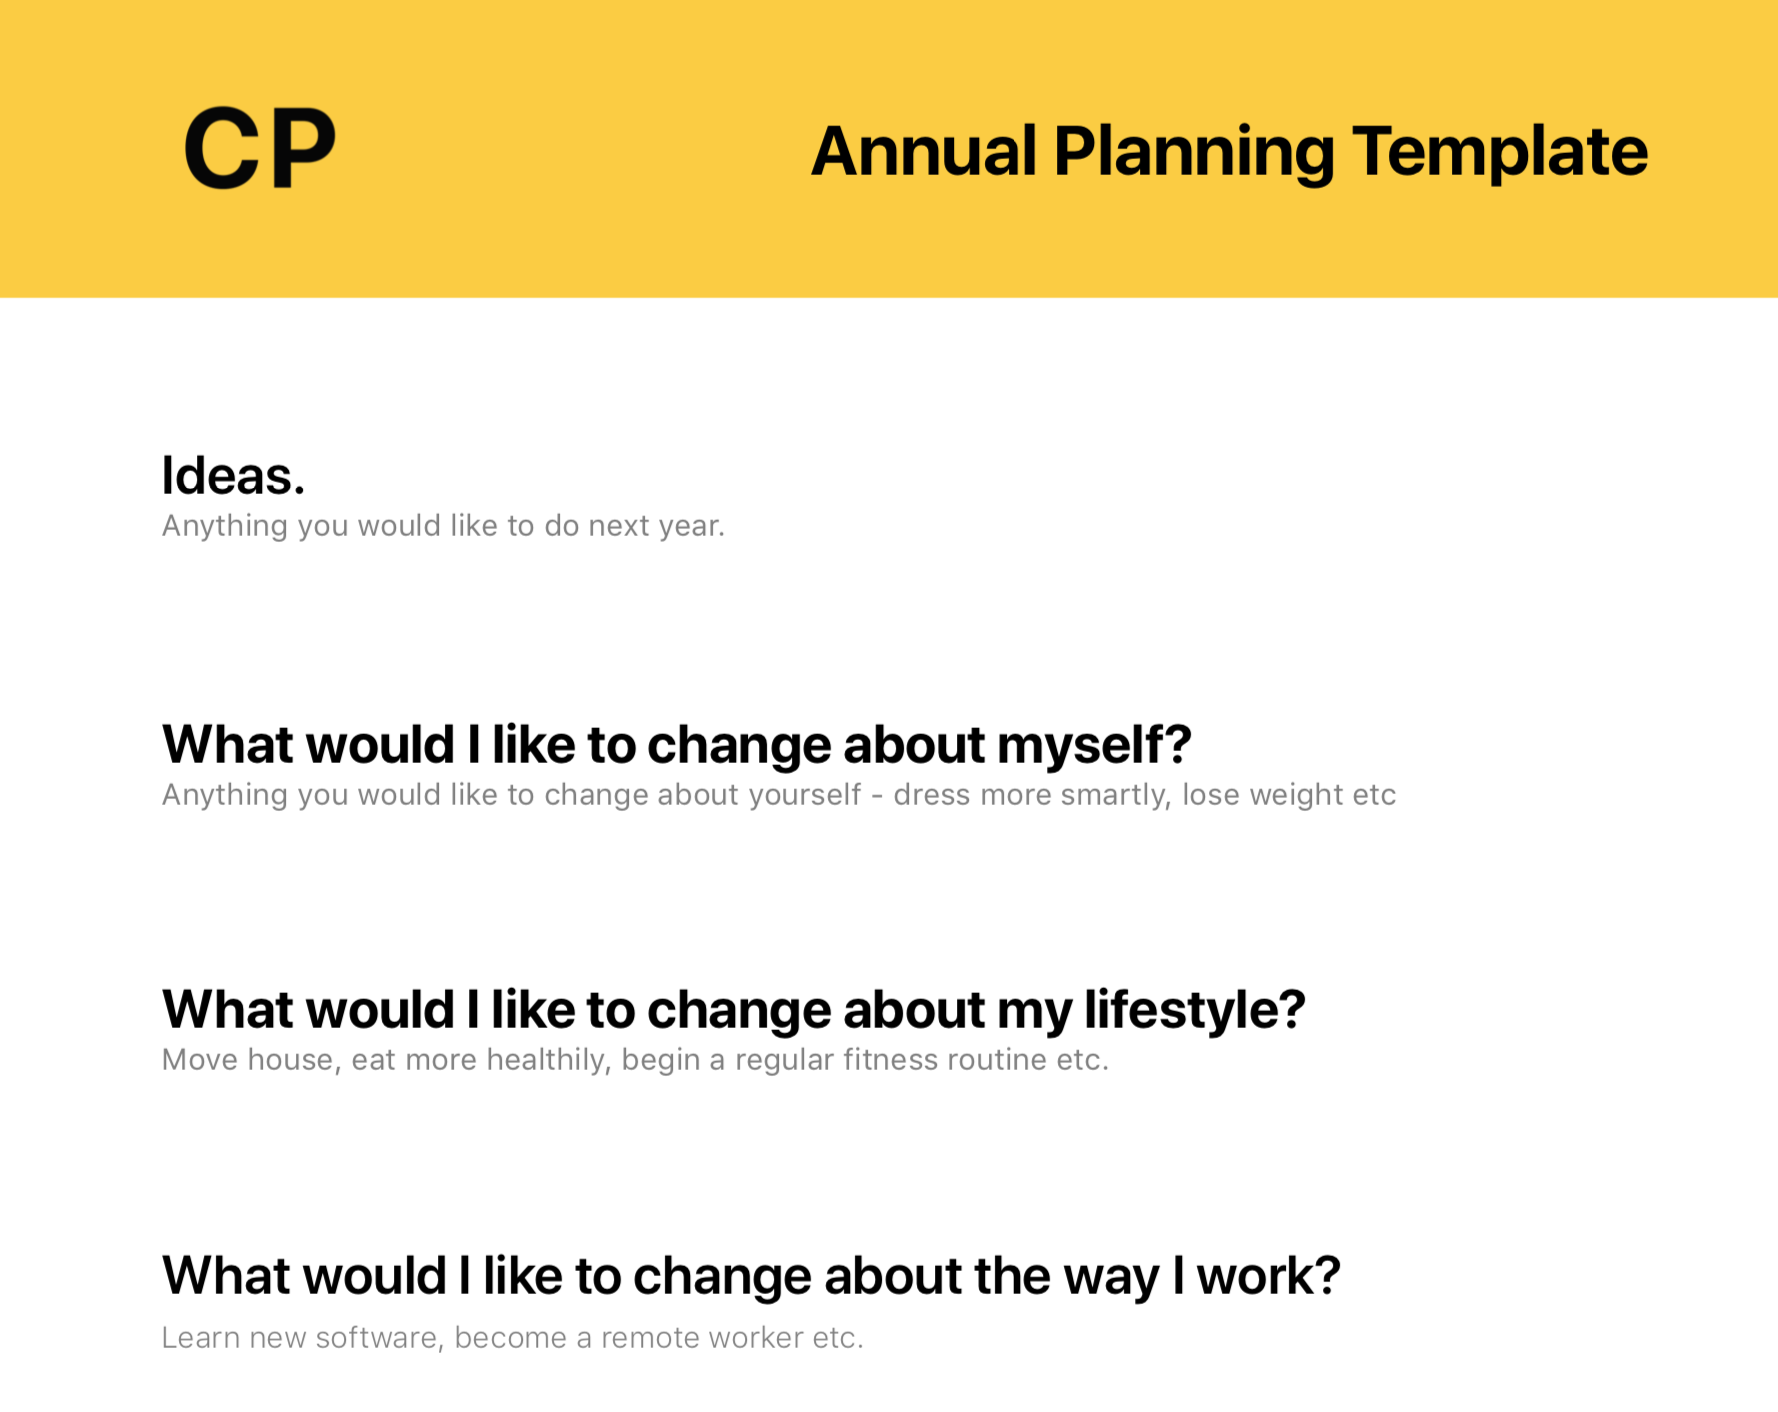 The Annual Planning Template - You can start this at any time to get your life back under control.